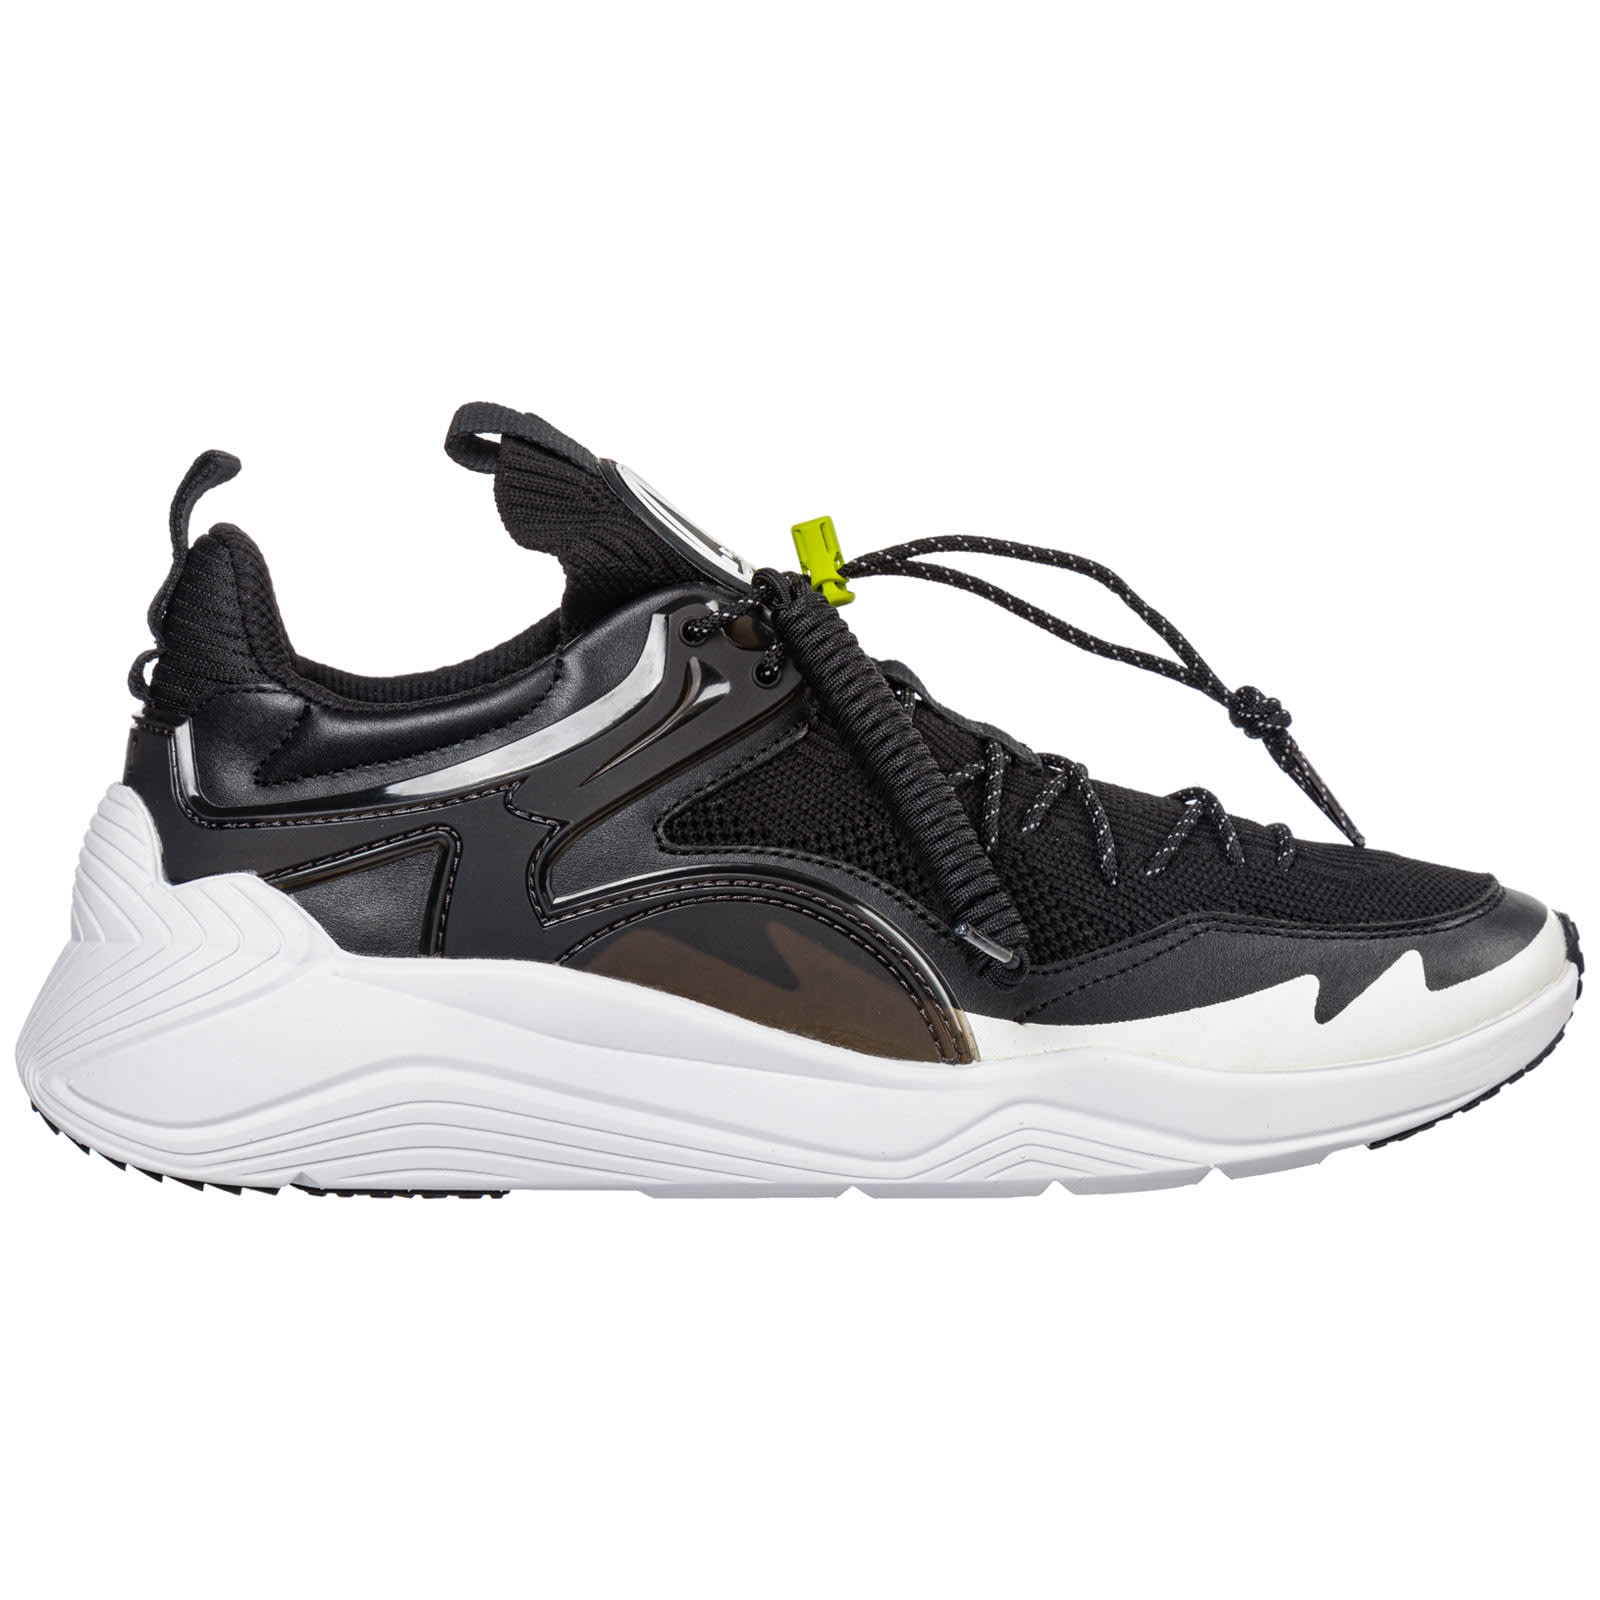 McQ Alexander McQueen Shoes Trainers Sneakers Ghishiki 2.0